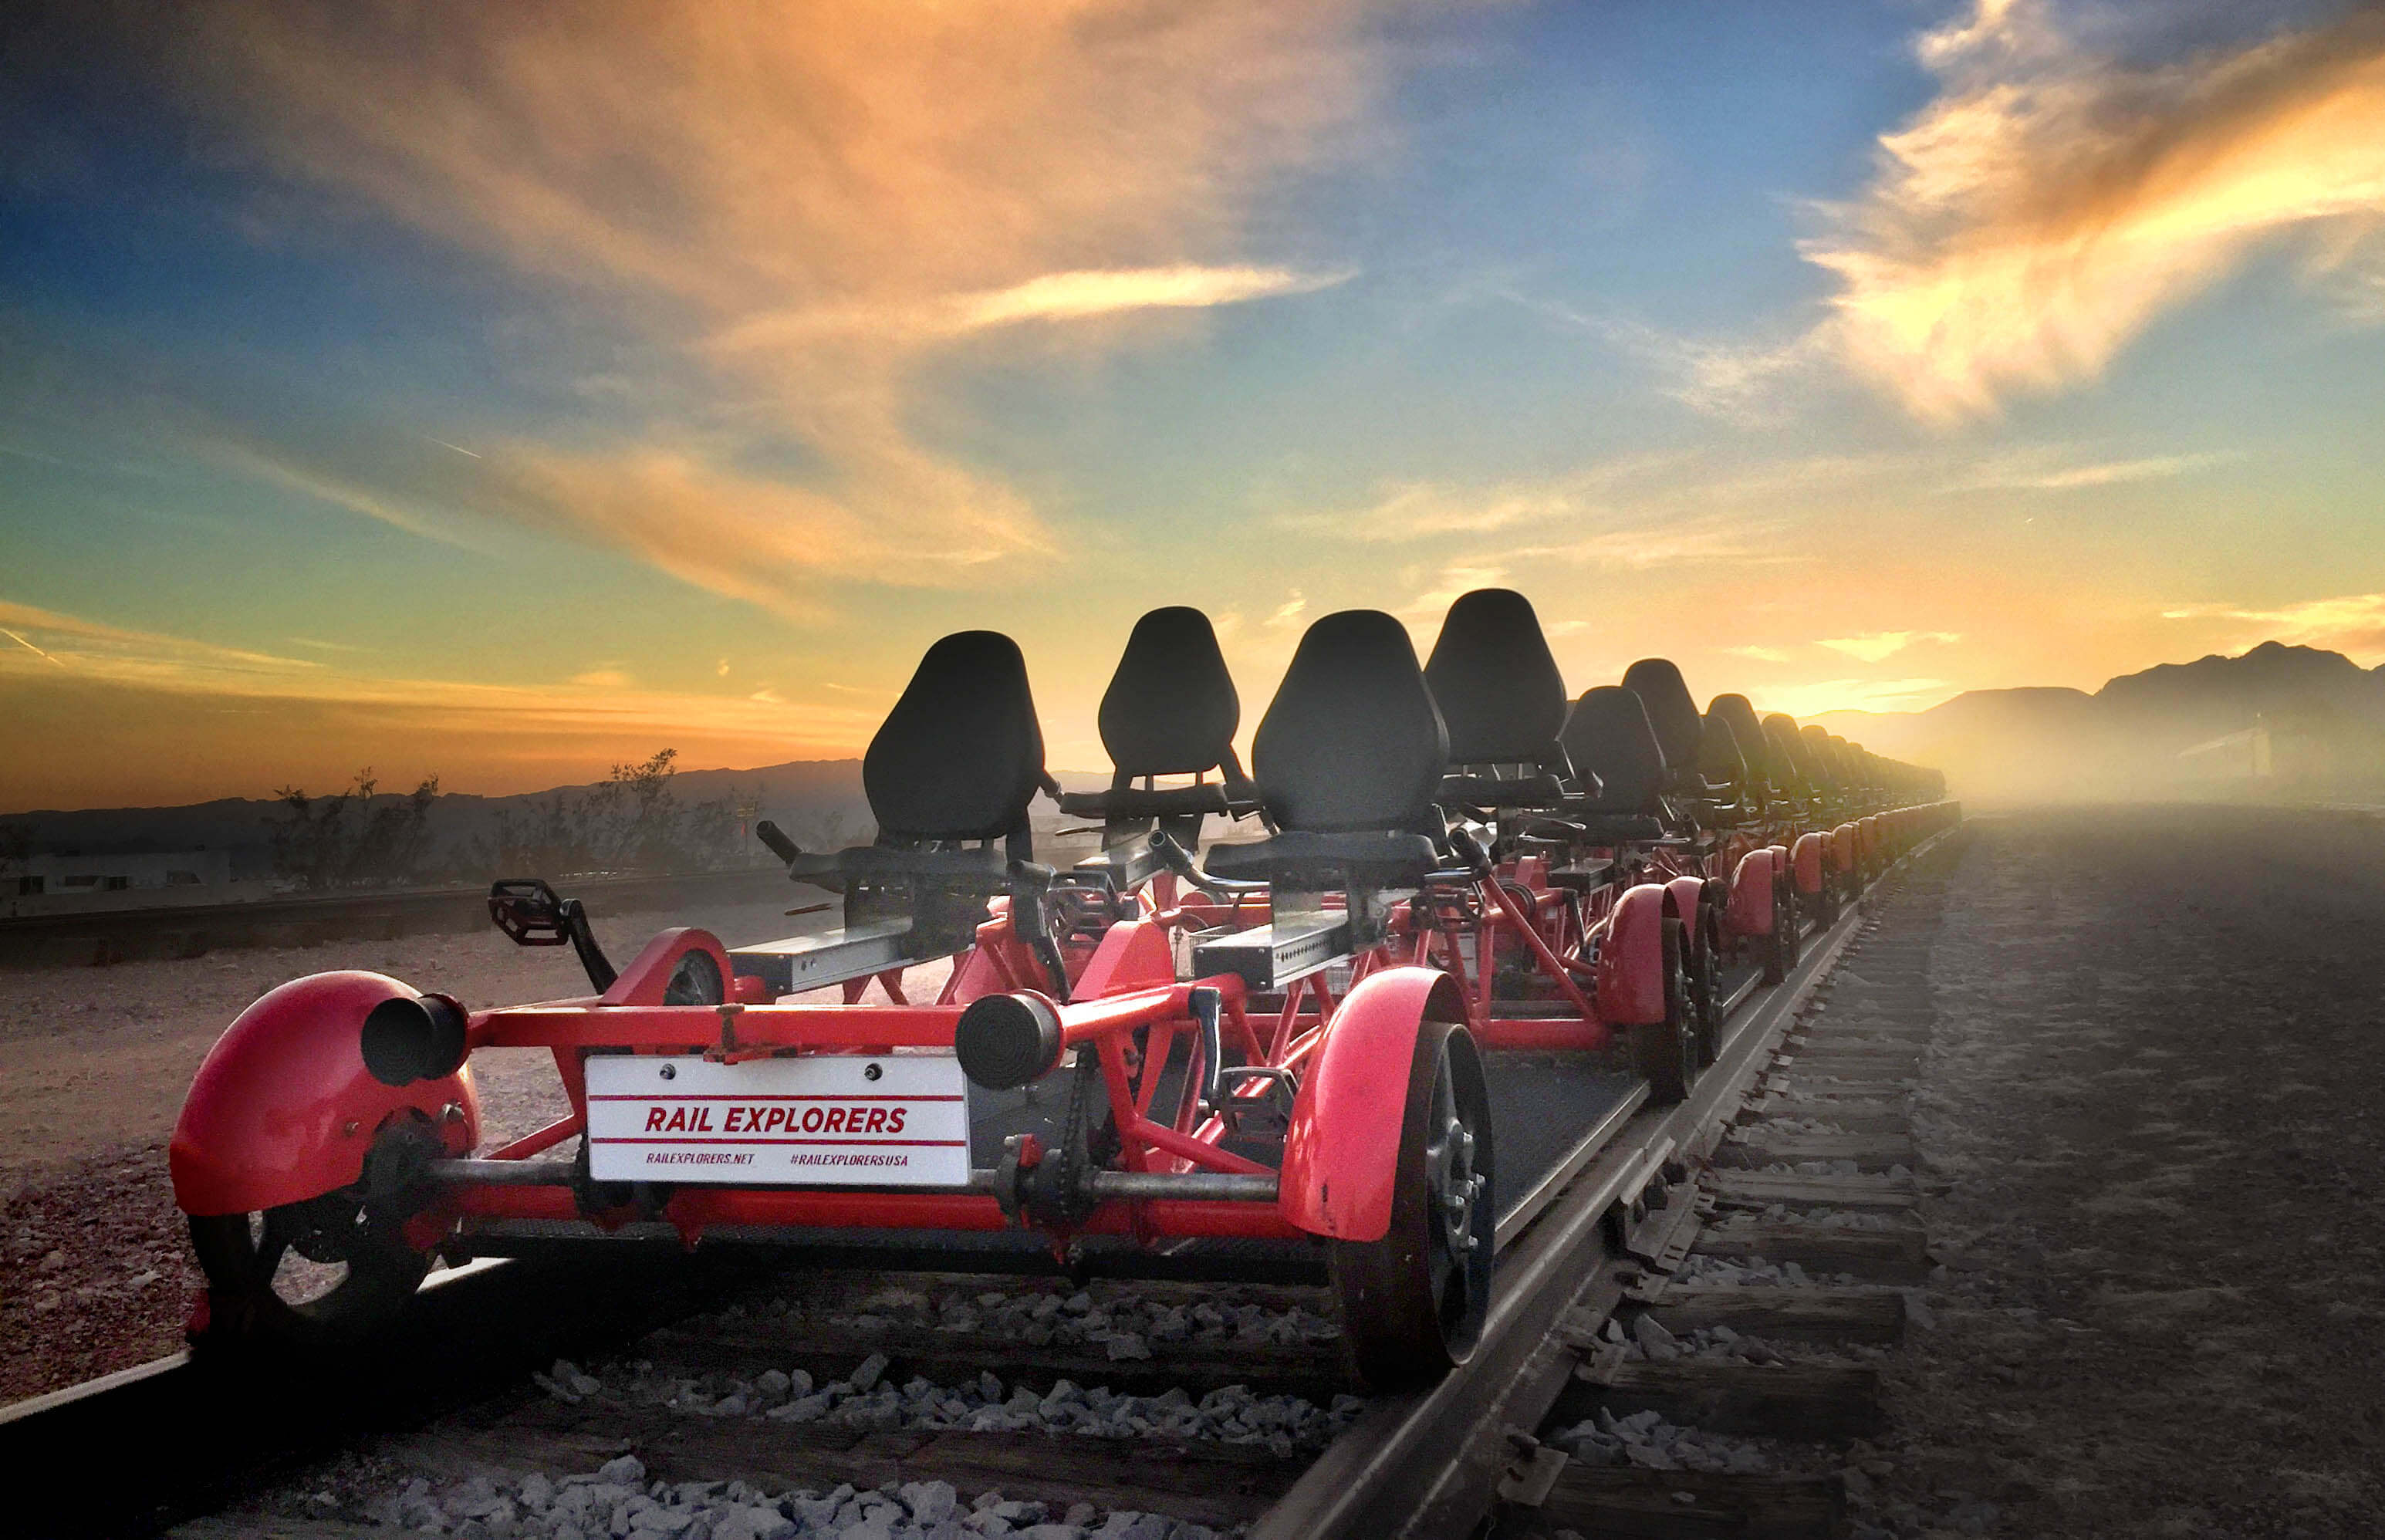 Experience The Magic Of The Railroad Like Never Before